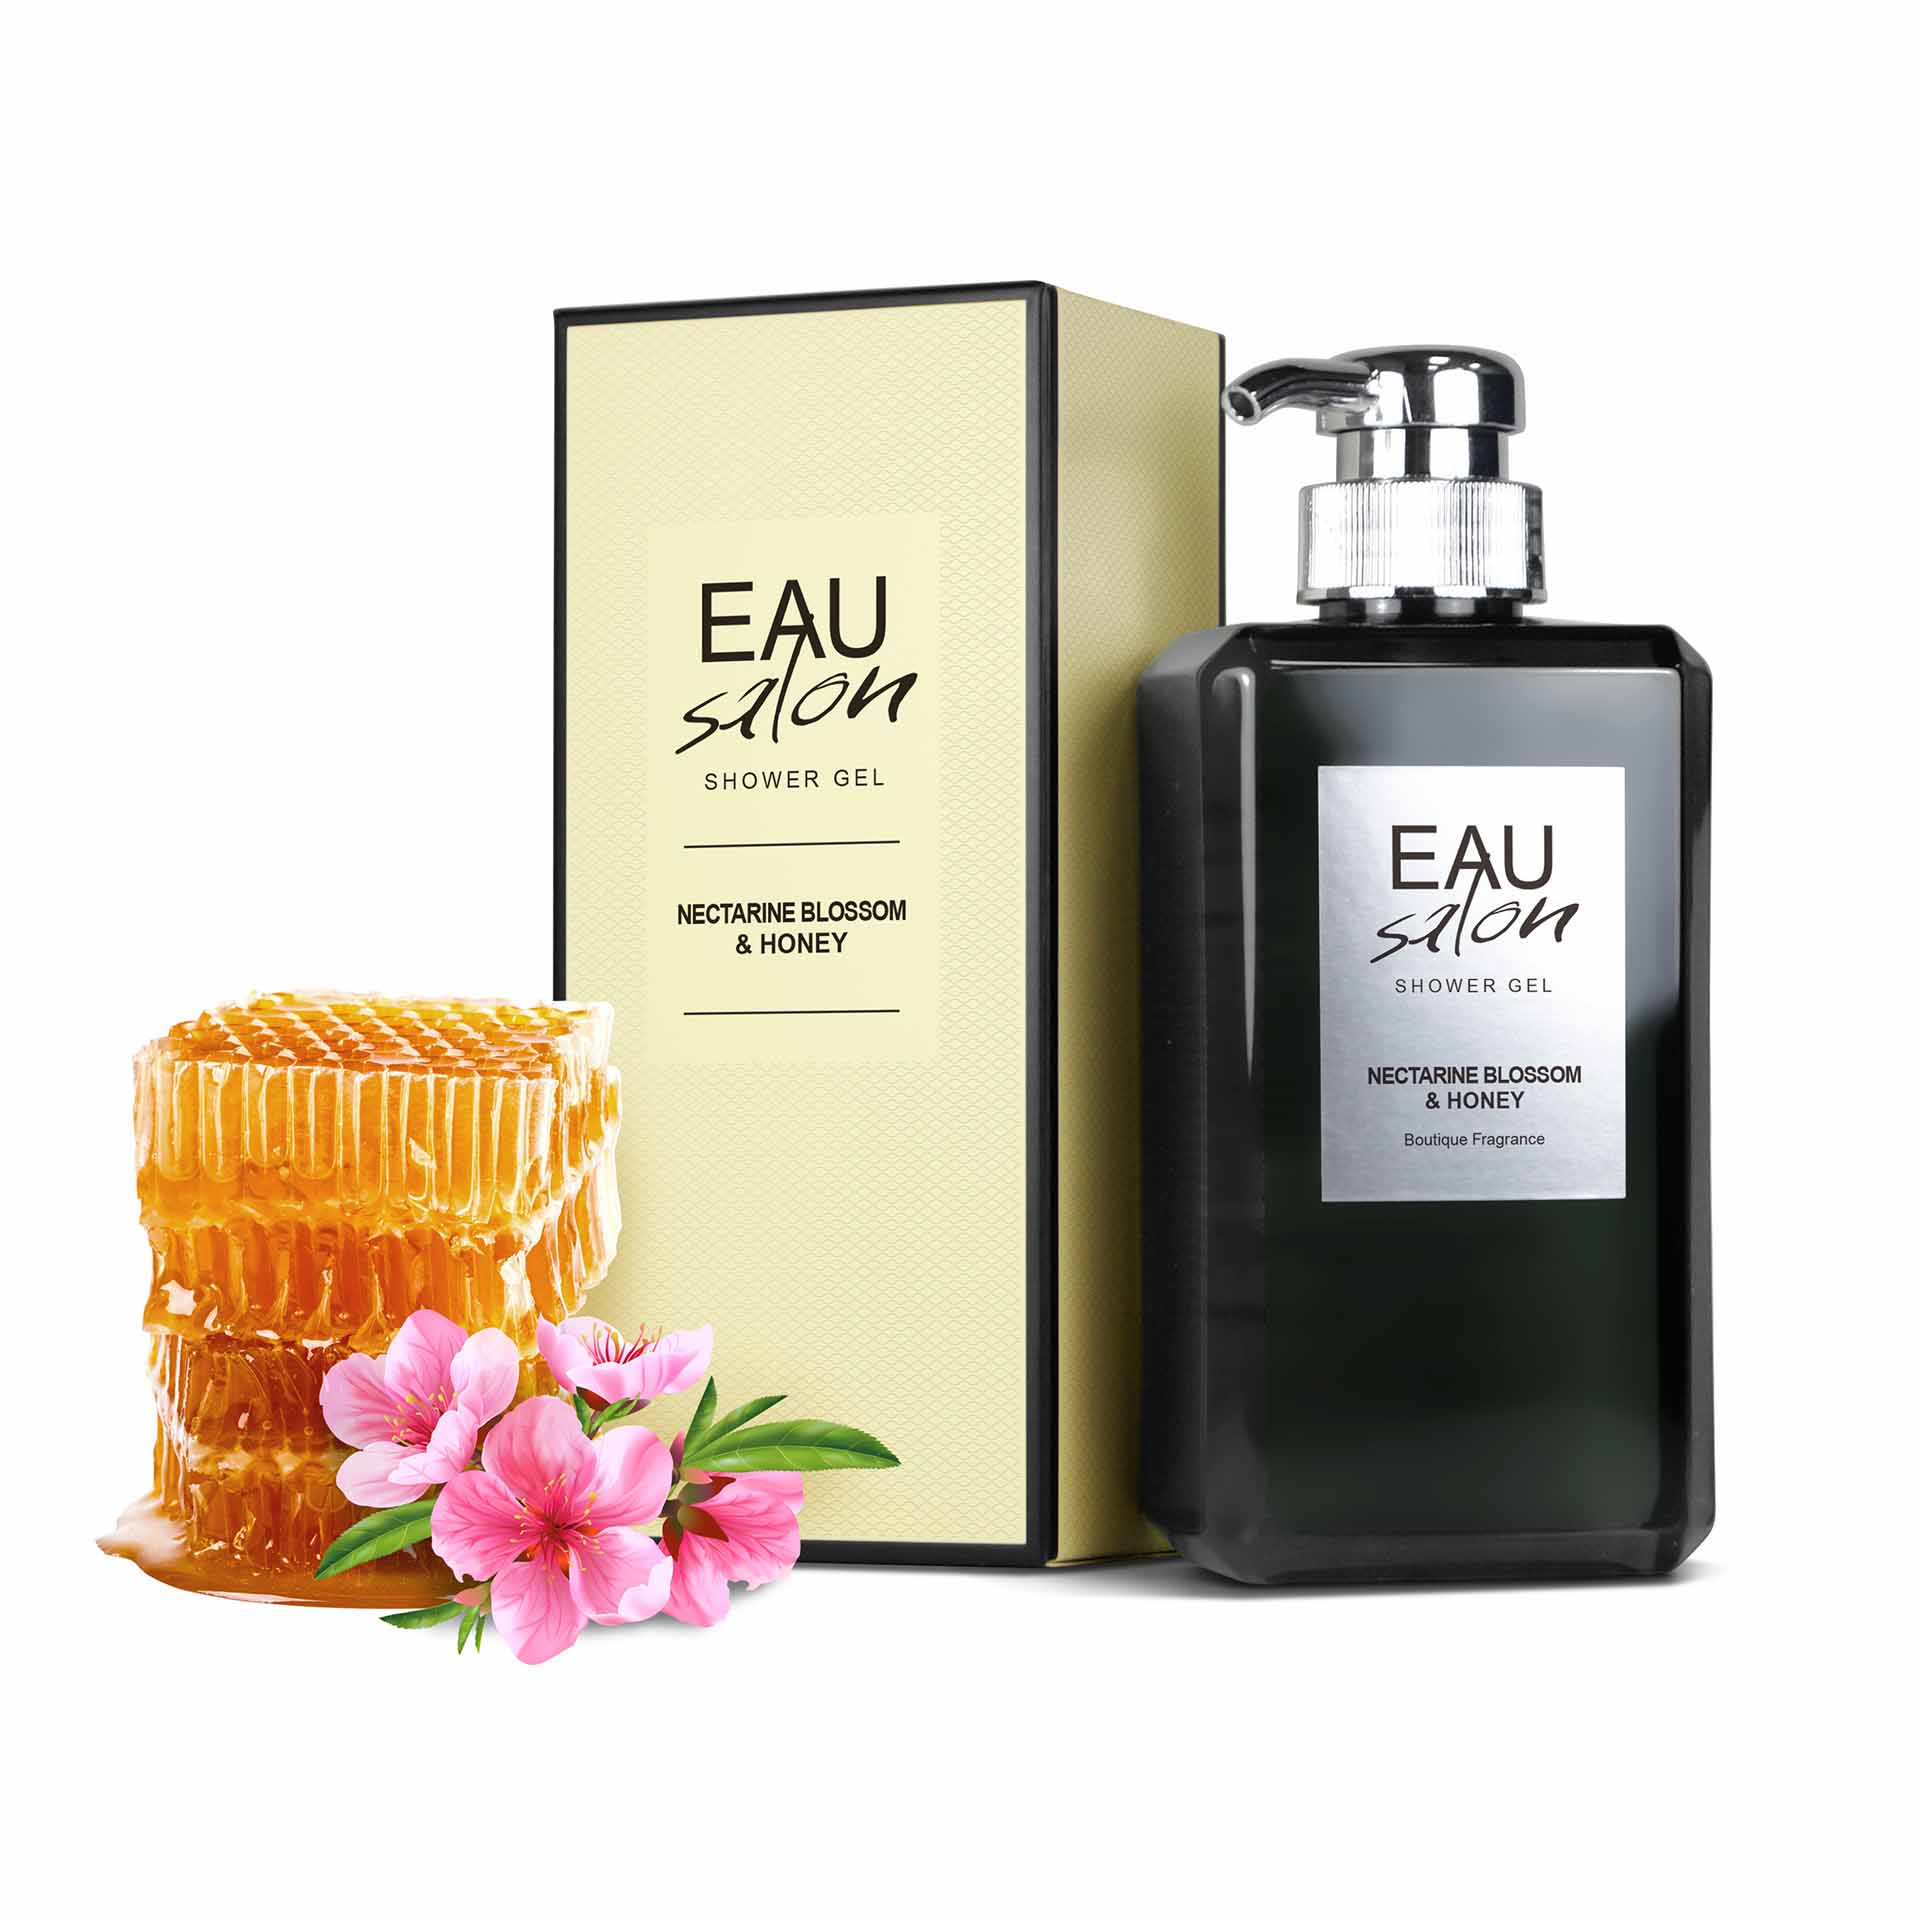 【EAU Salon】想念曖昧蜂蜜杏桃花500ml